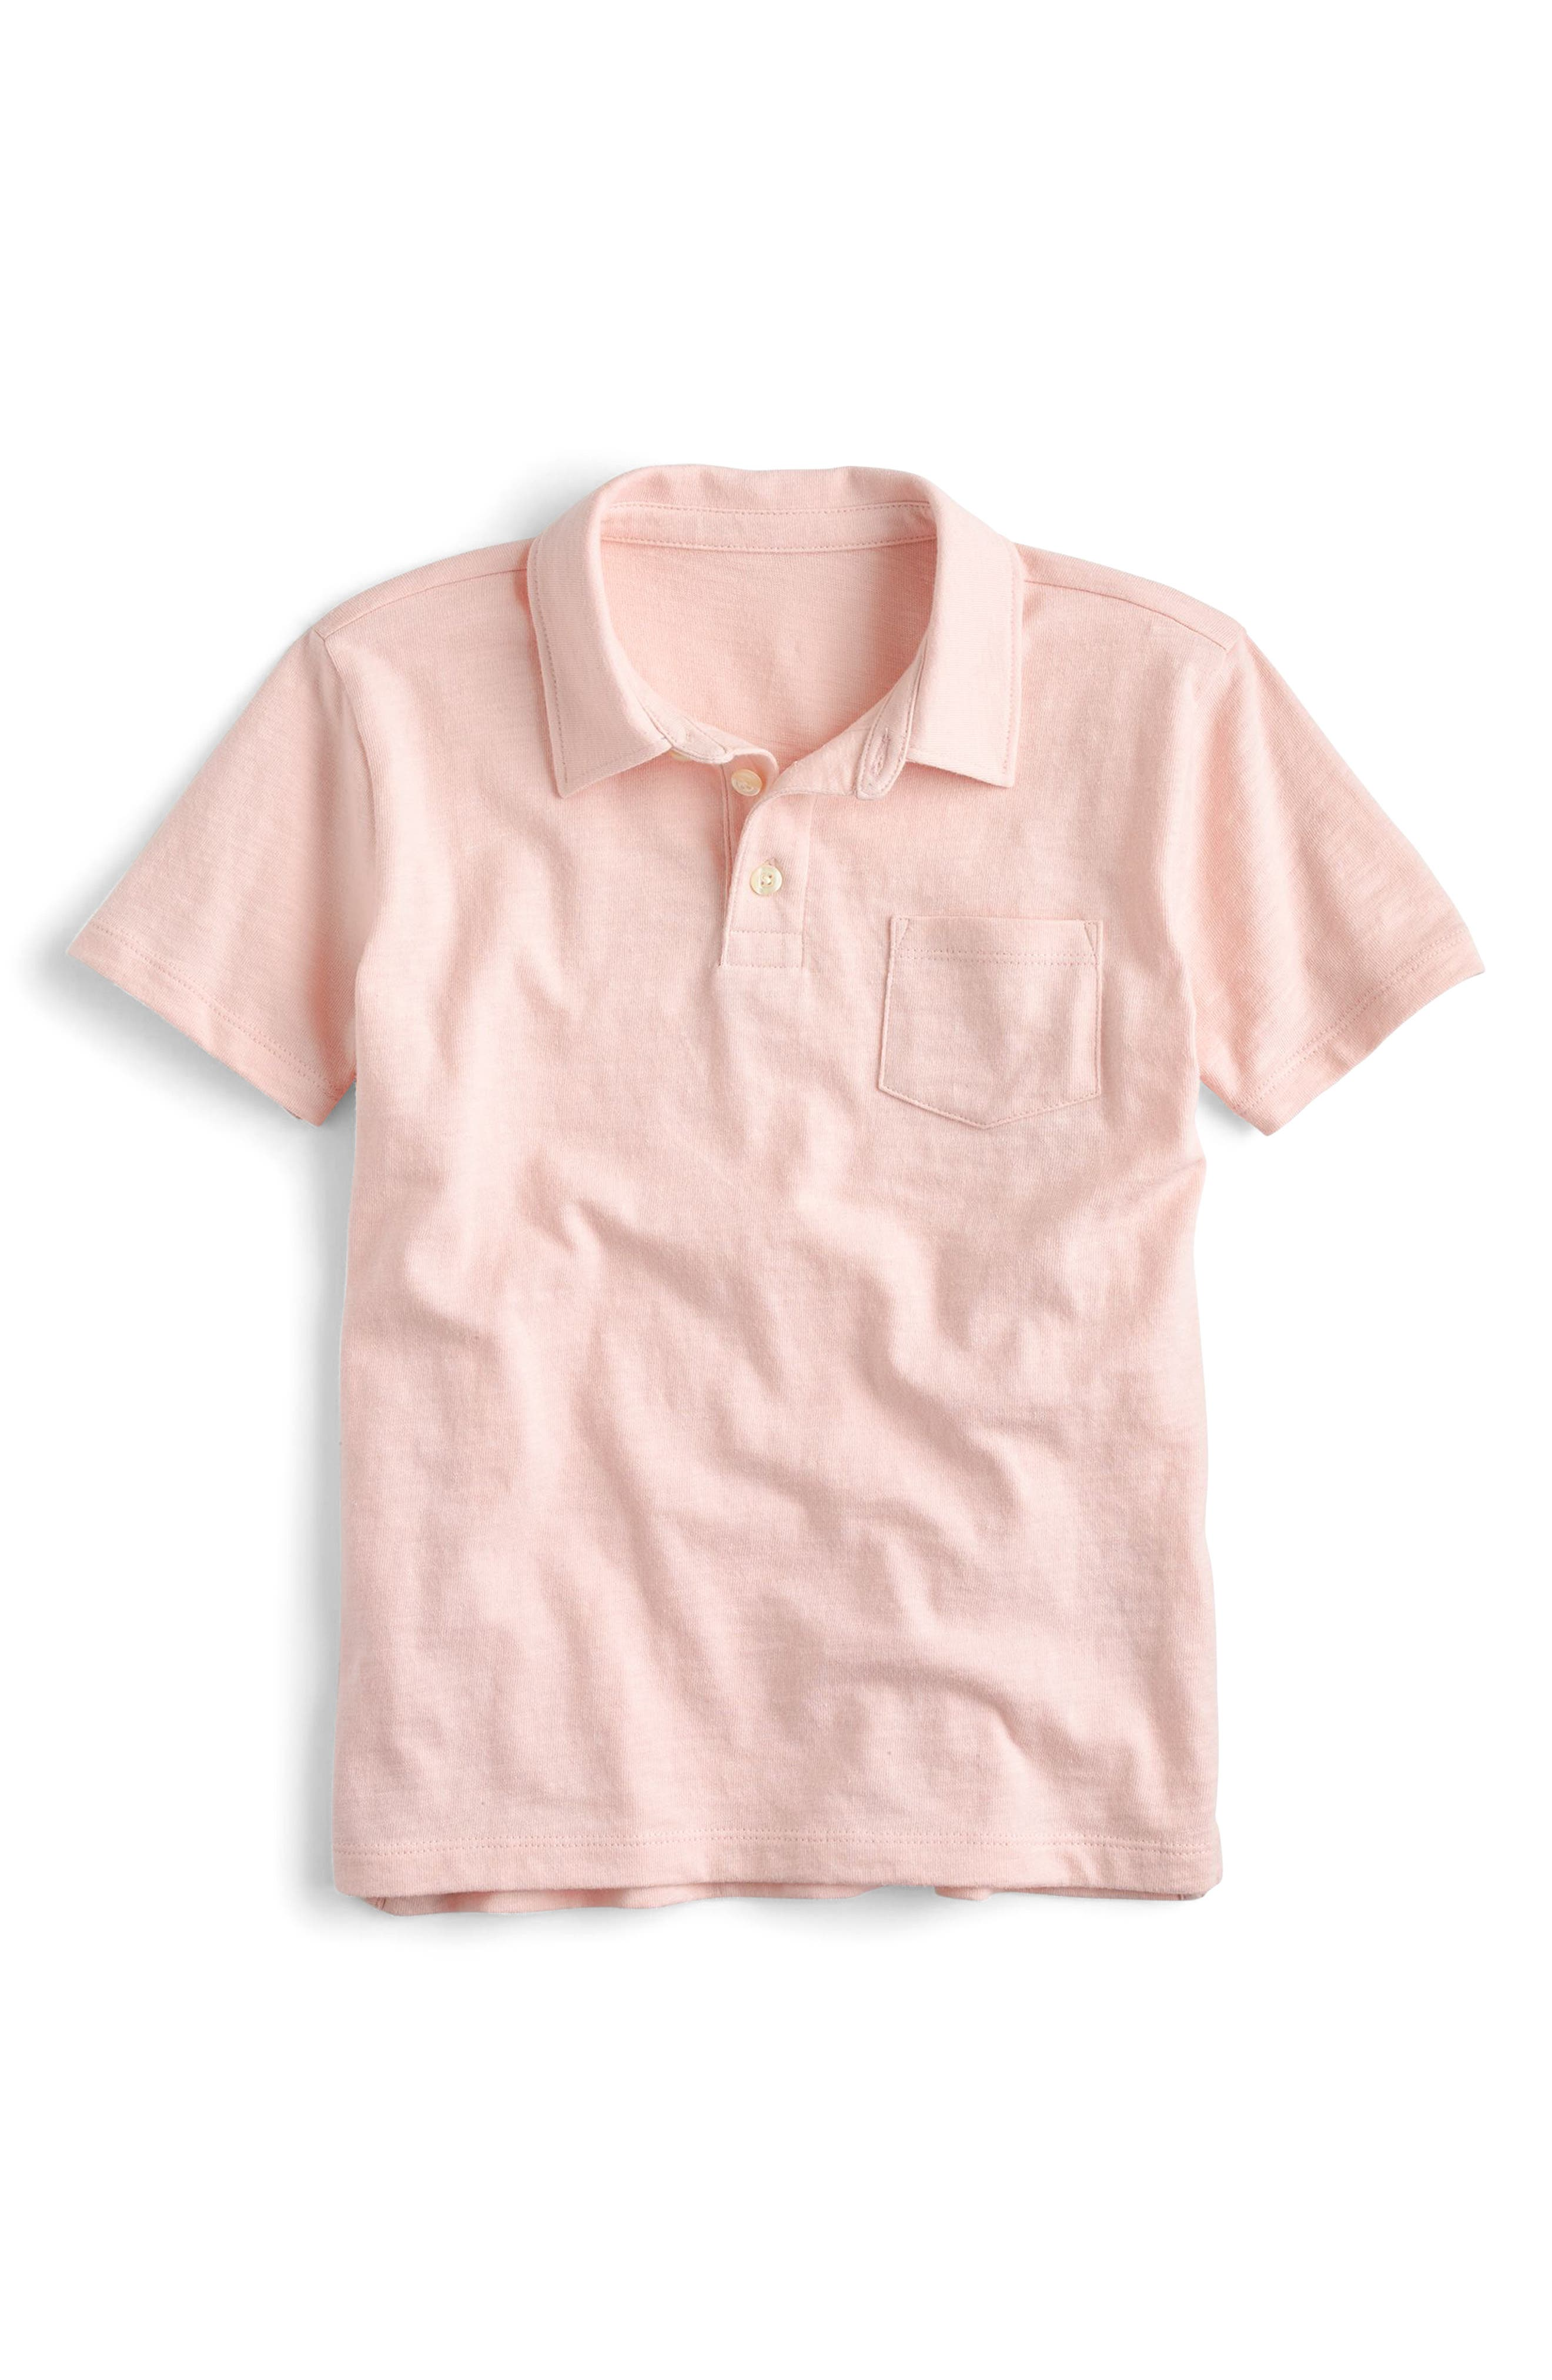 Main Image - crewcuts by J.Crew Jersey Polo (Toddler Boys, Little Boys & Big Boys)